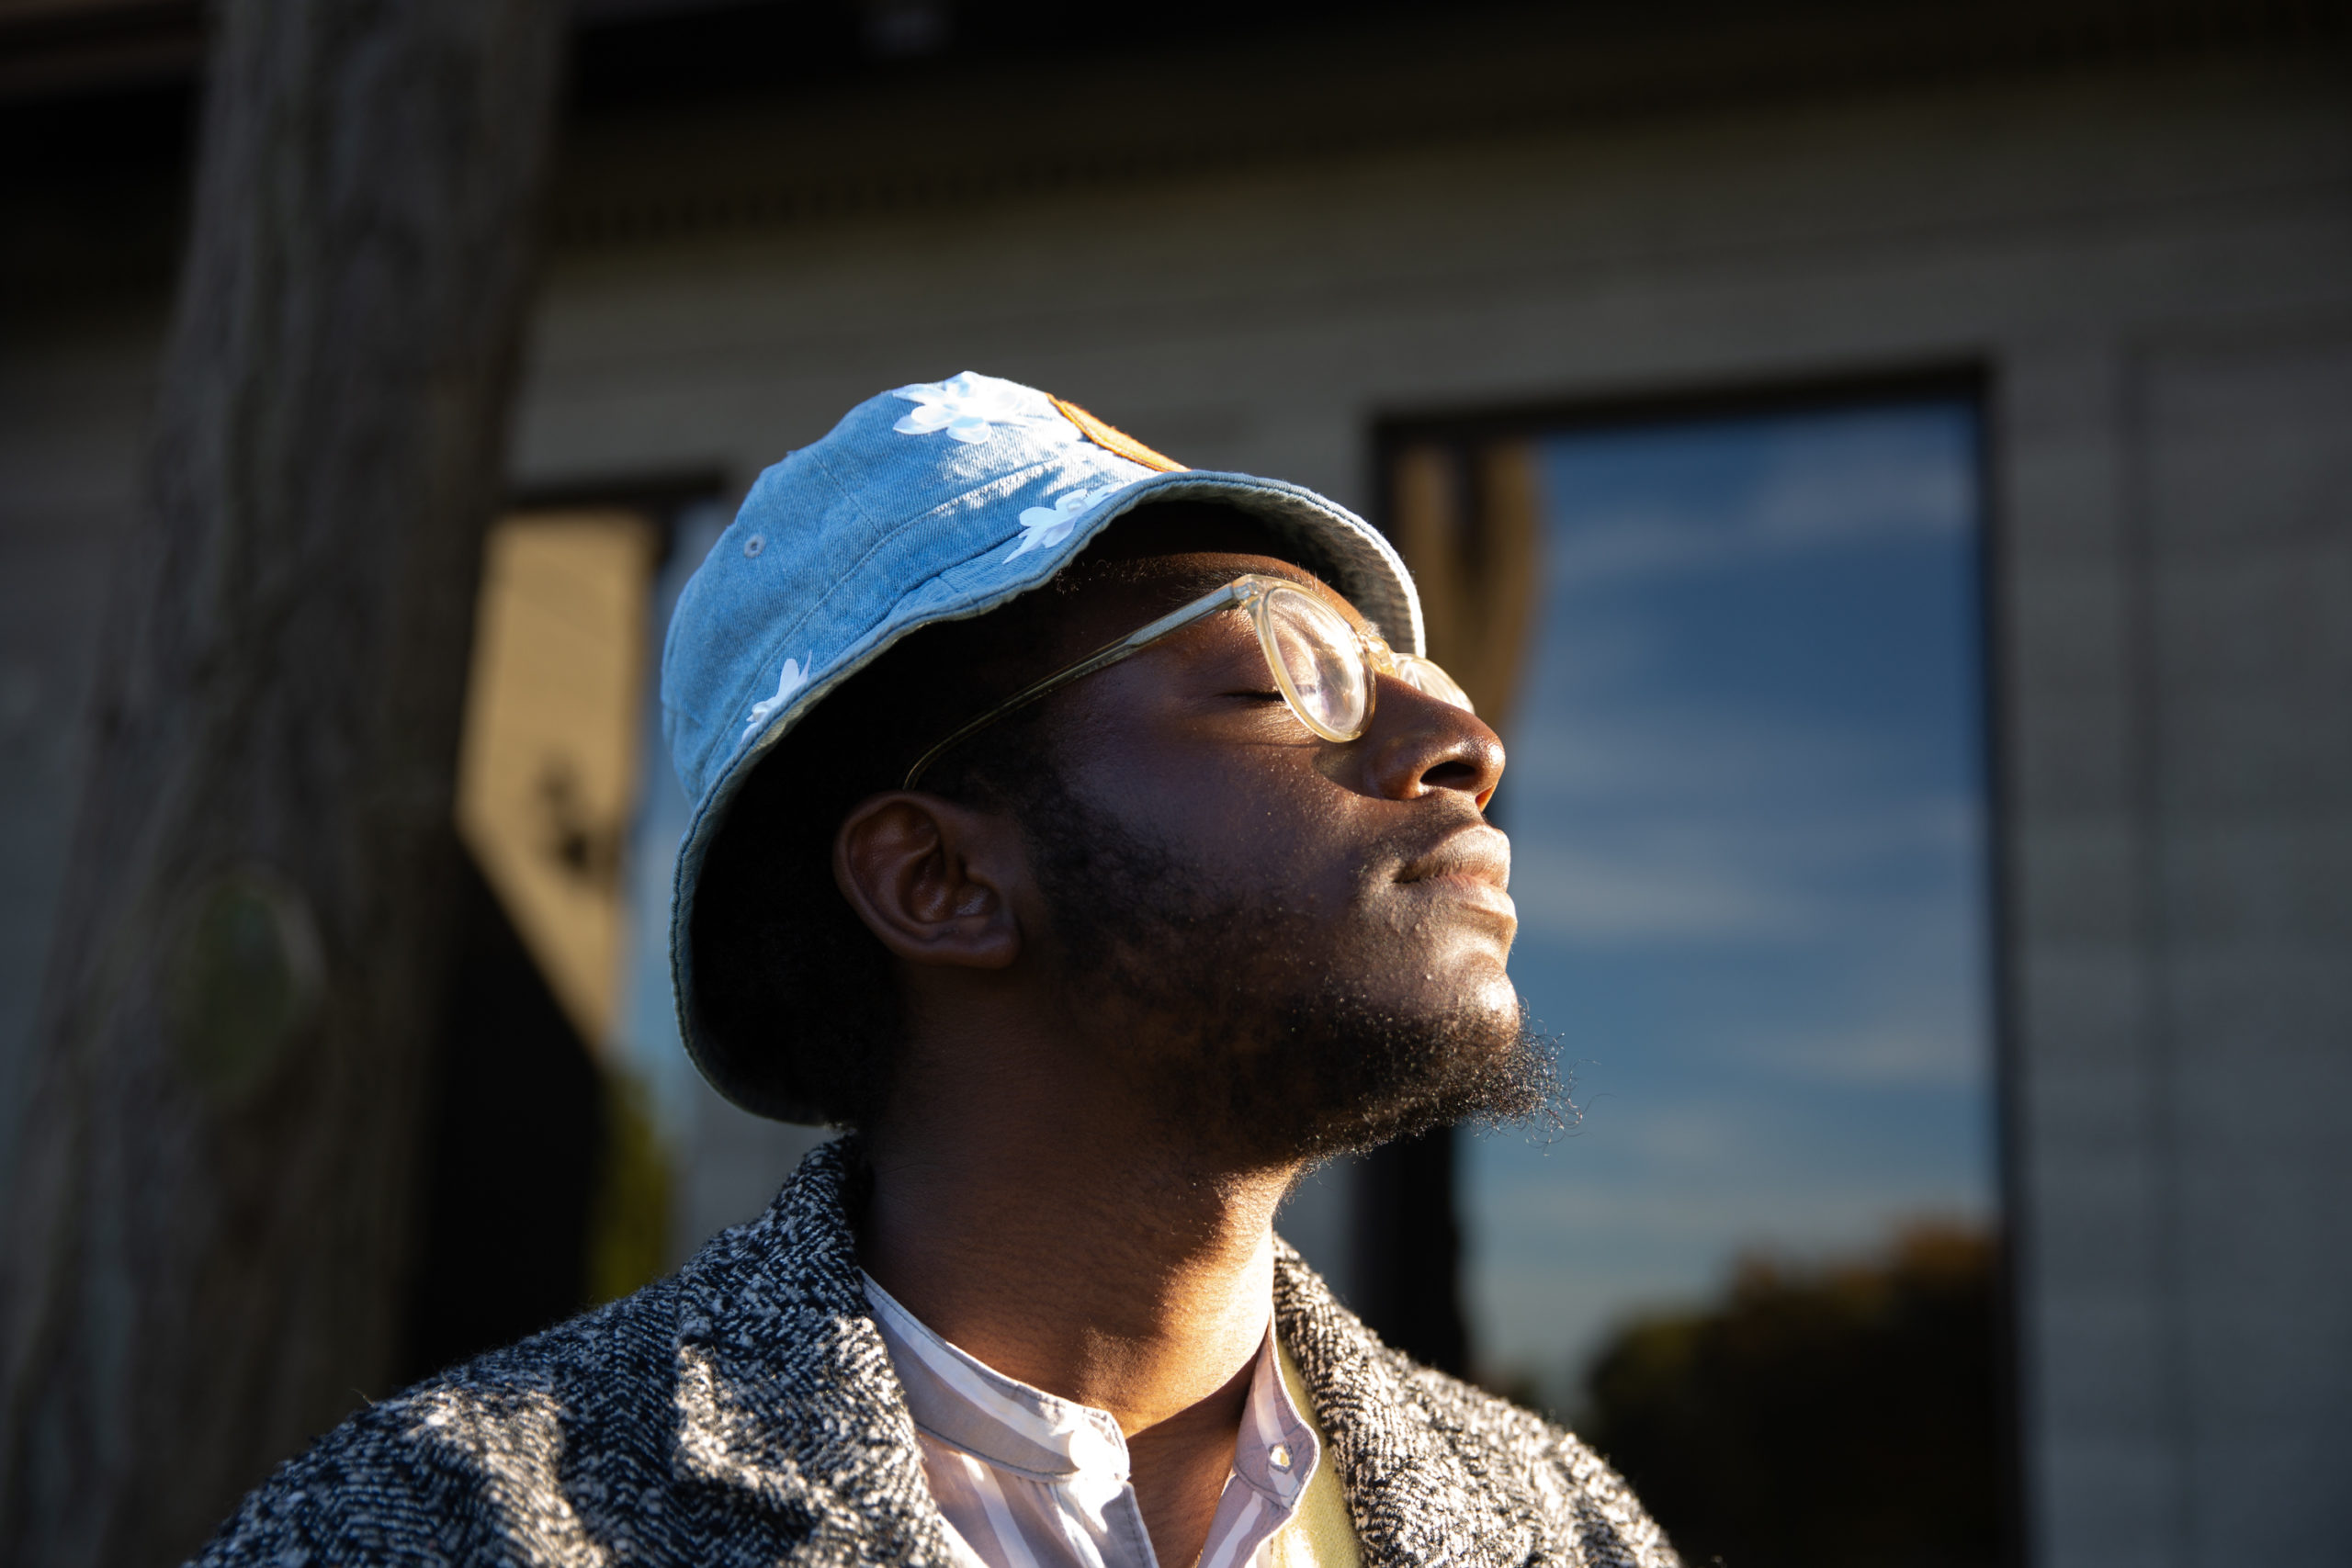 Community Leadership Corps member Oluwaseyi Adeleke takes in the warming sun with his eyes closed.